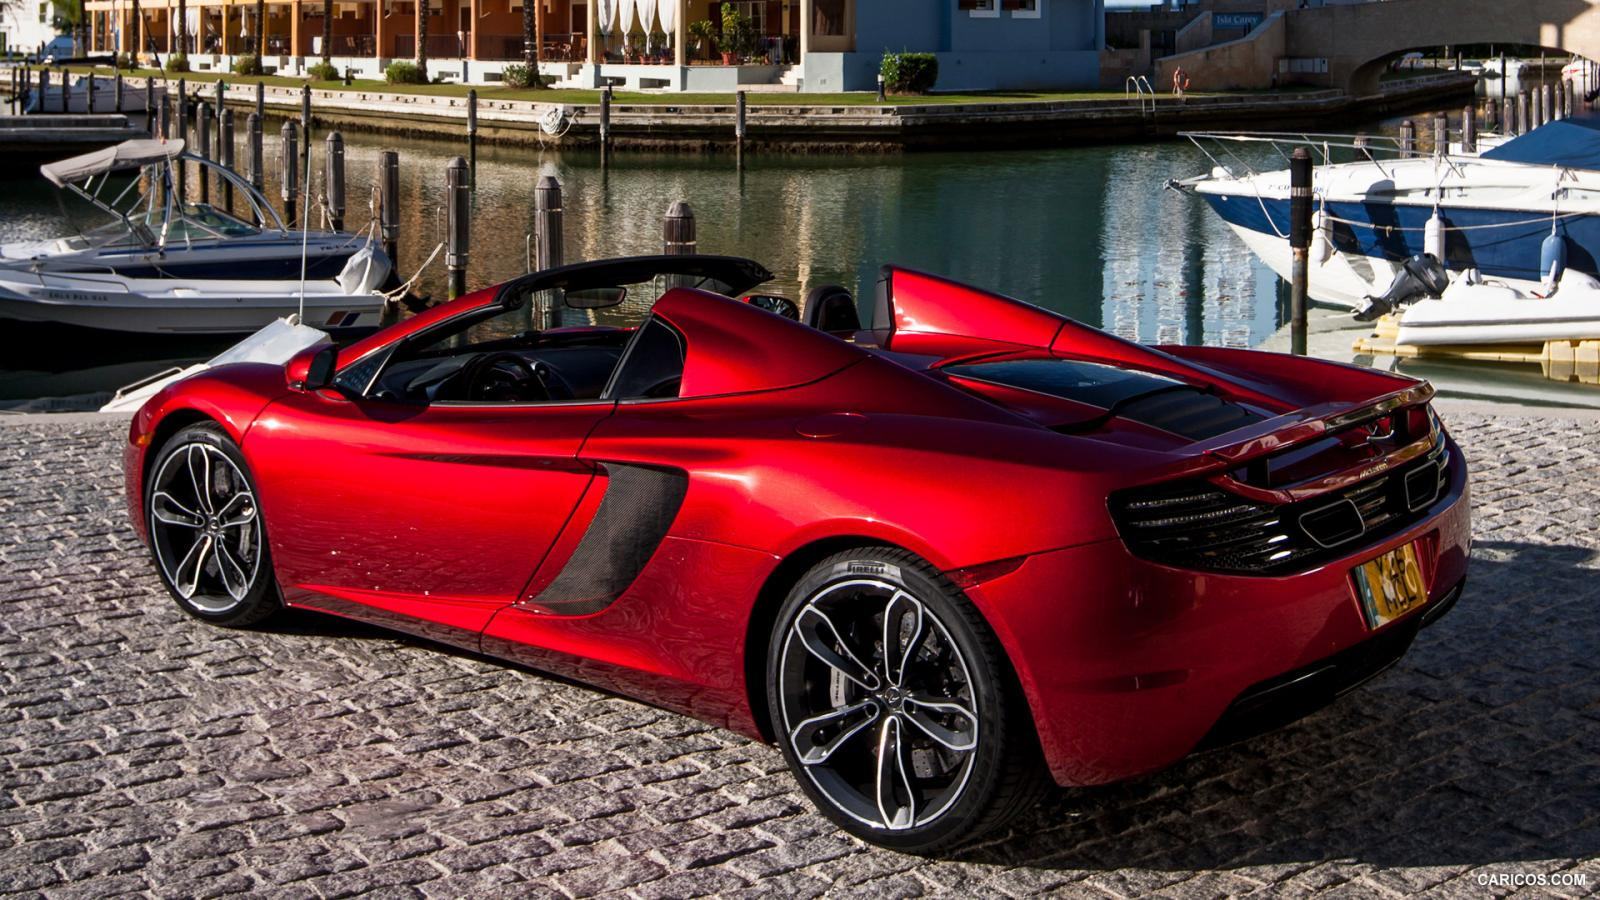 2013 mclaren mp4 12c spider information and photos zombiedrive. Black Bedroom Furniture Sets. Home Design Ideas